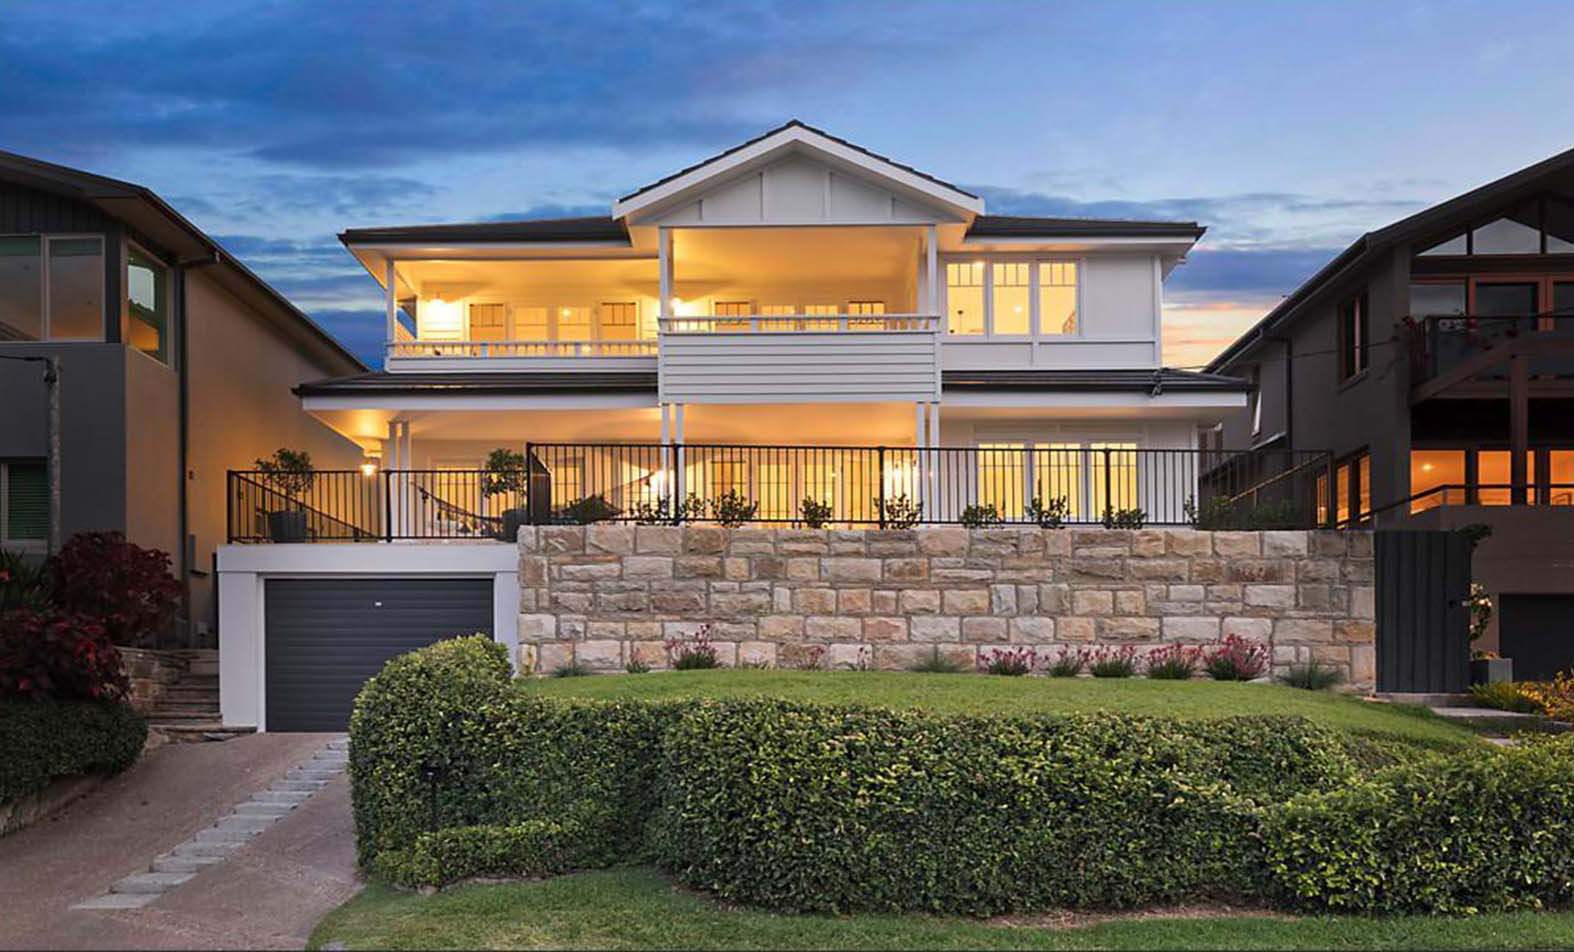 Jellicoe House Balgowlah - Completed Home